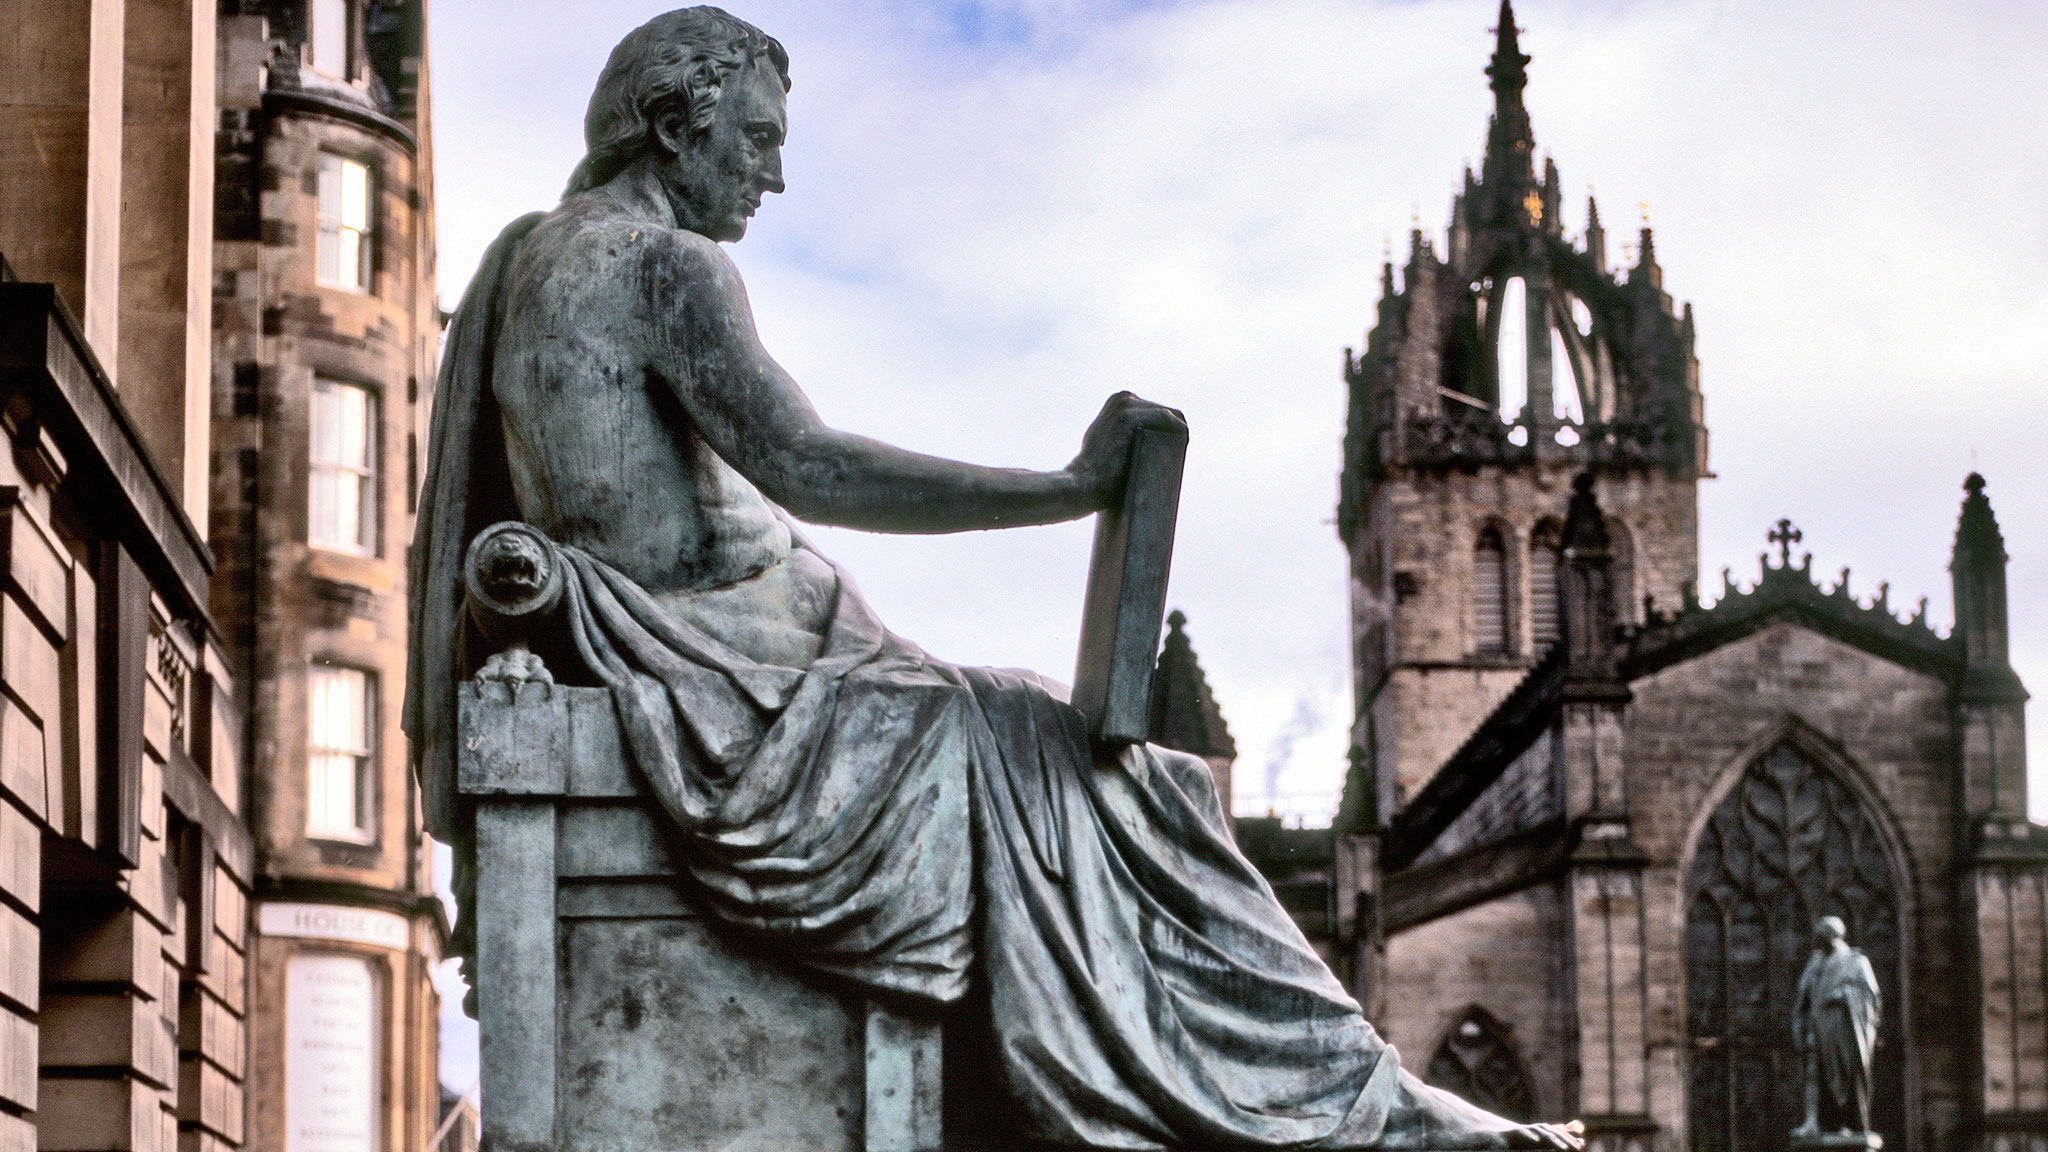 Edinburgh's statue of David Hume, the 18th-century philosopher © Kieran Dodds/Panos Pictures